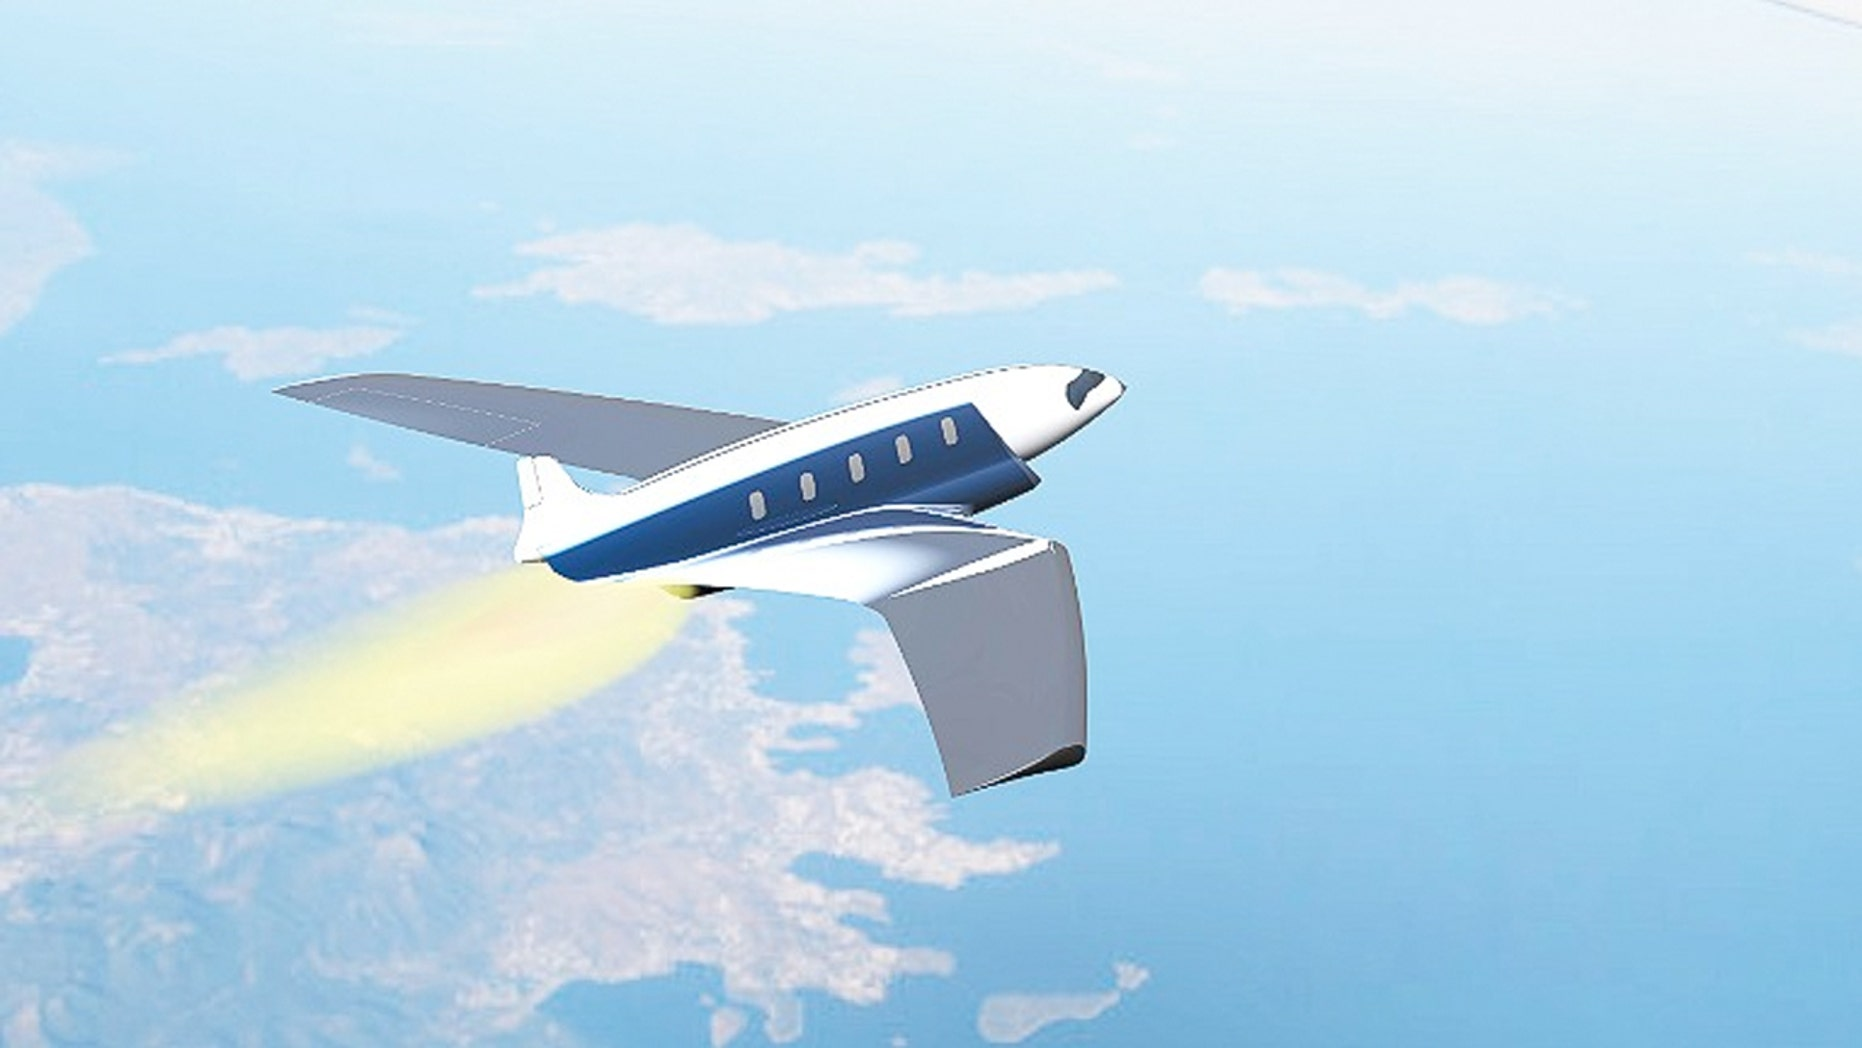 The Antipode would be able to reach Mach 24 or speeds of 12, 427 miles an hour.